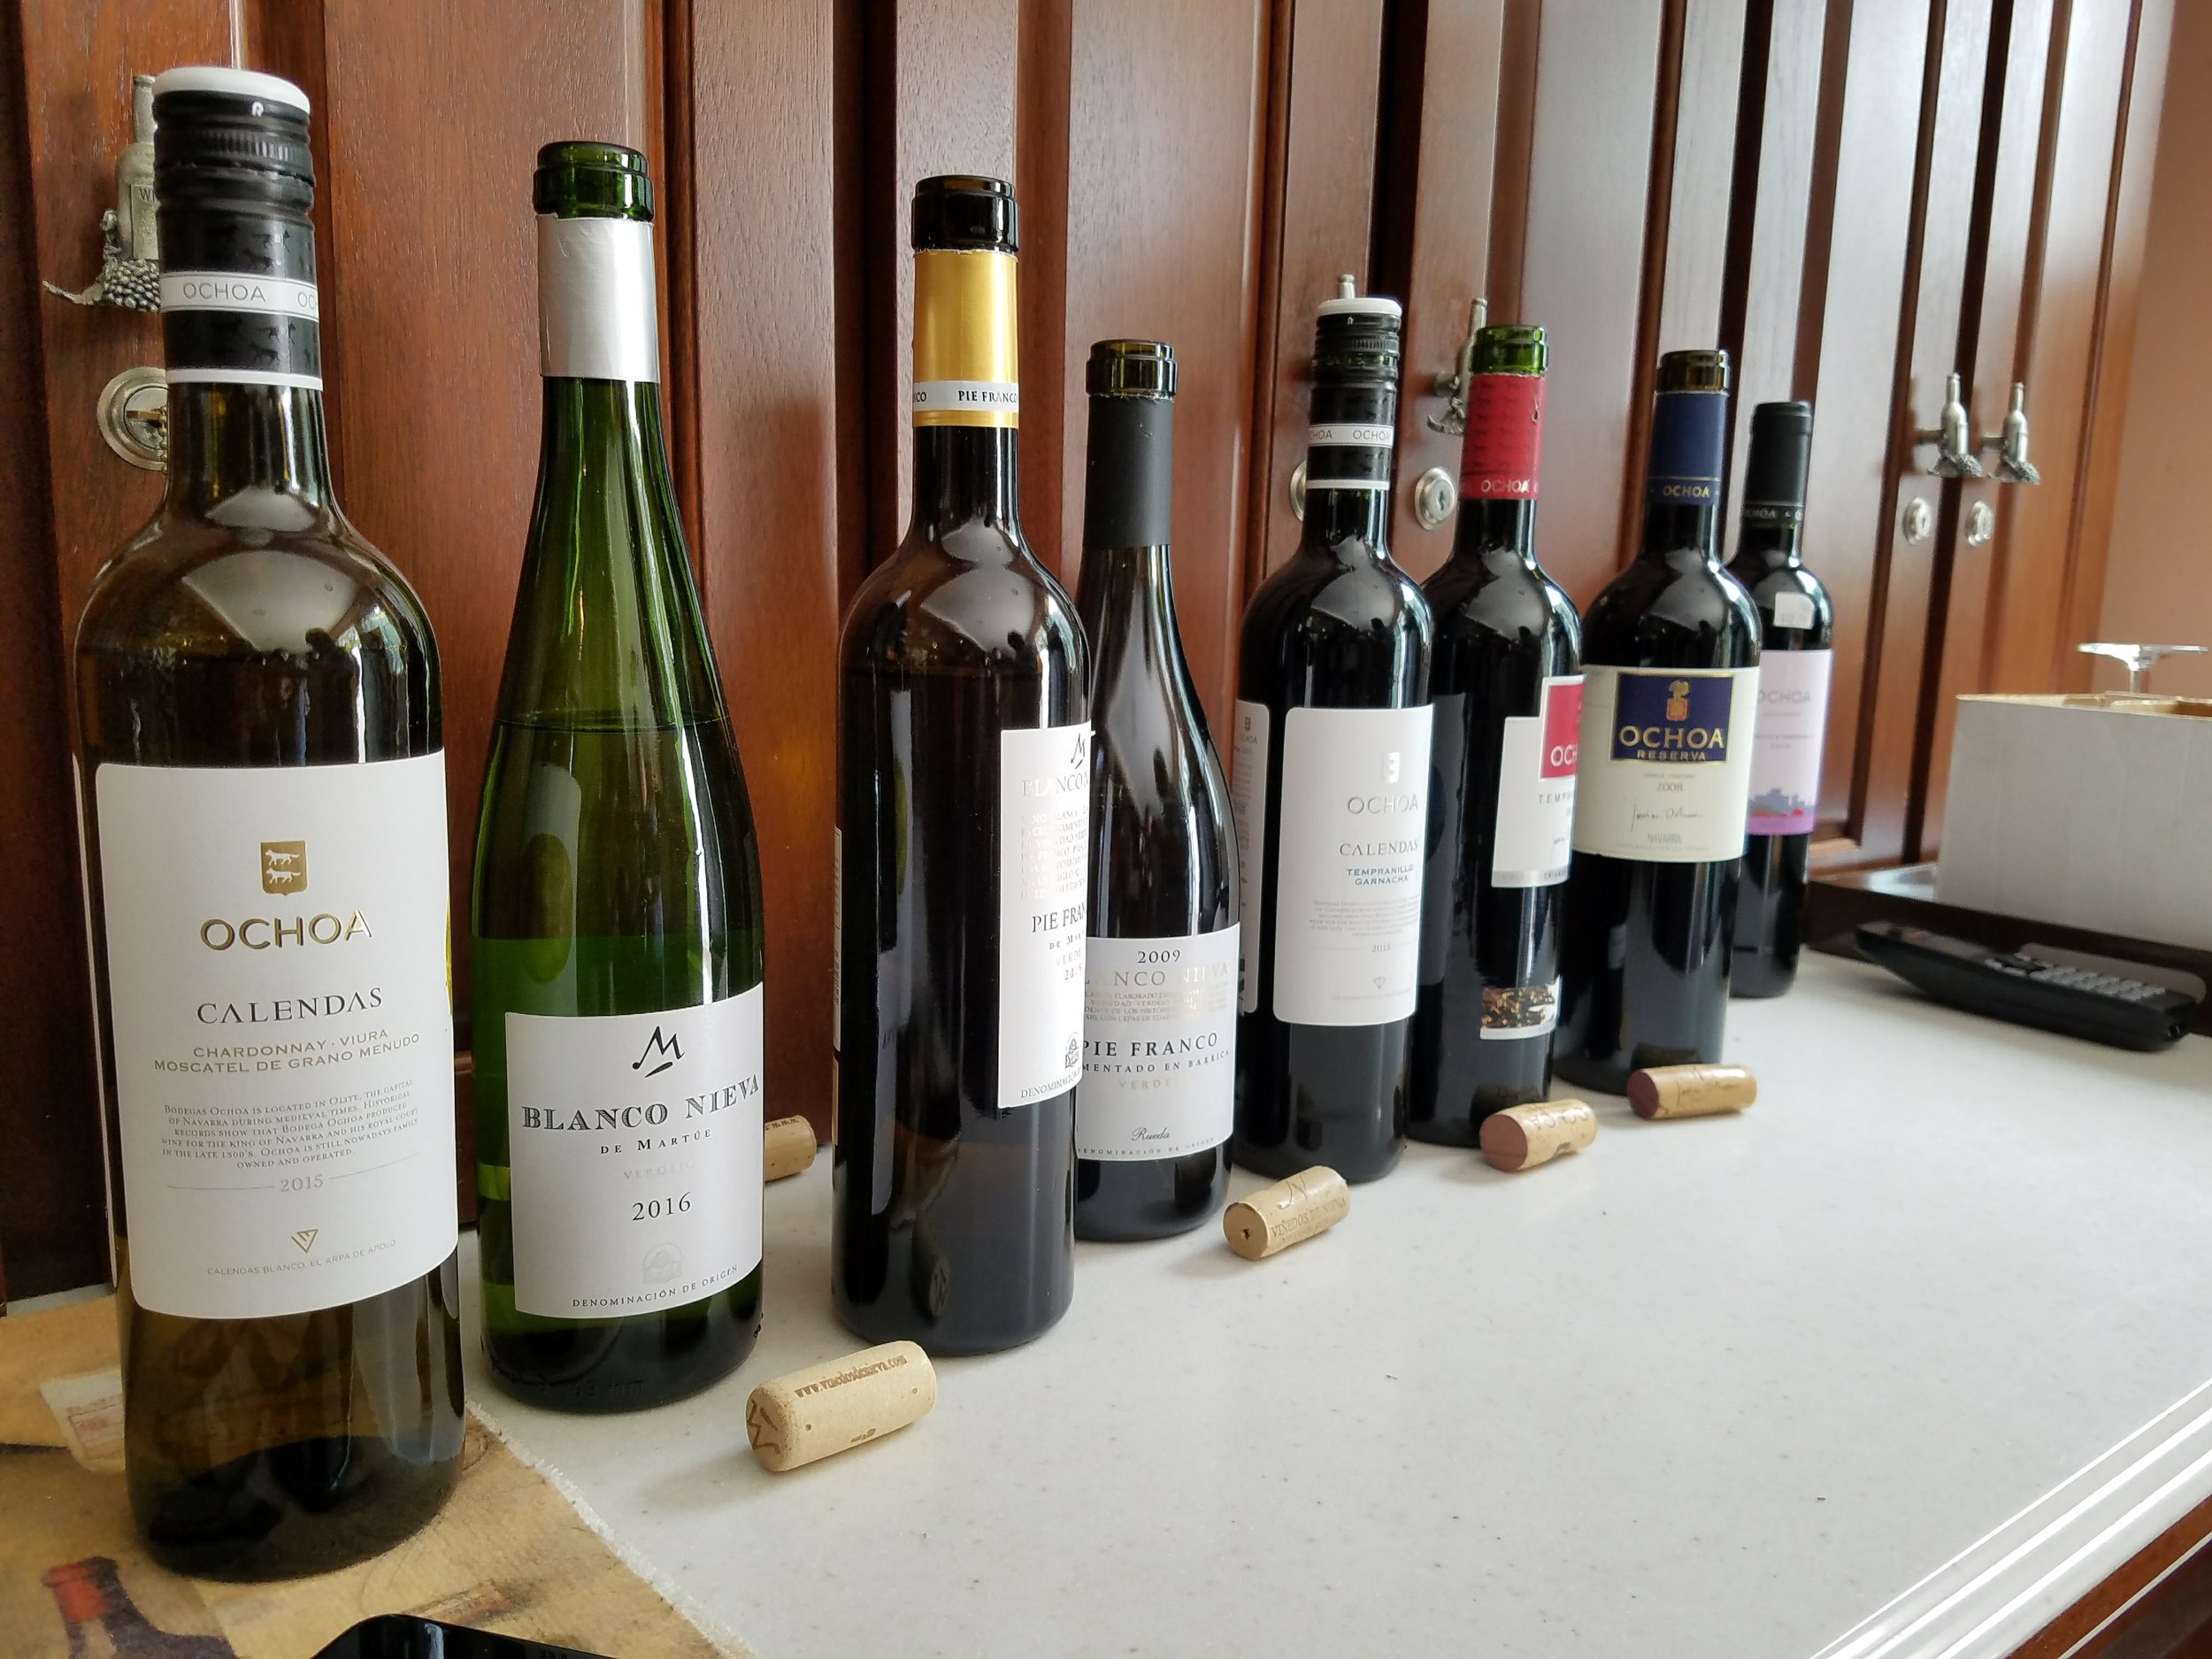 It took me a long time to get to enjoy so many different types of wine. Today, I help you establish a starting point if you are wondering where to begin.